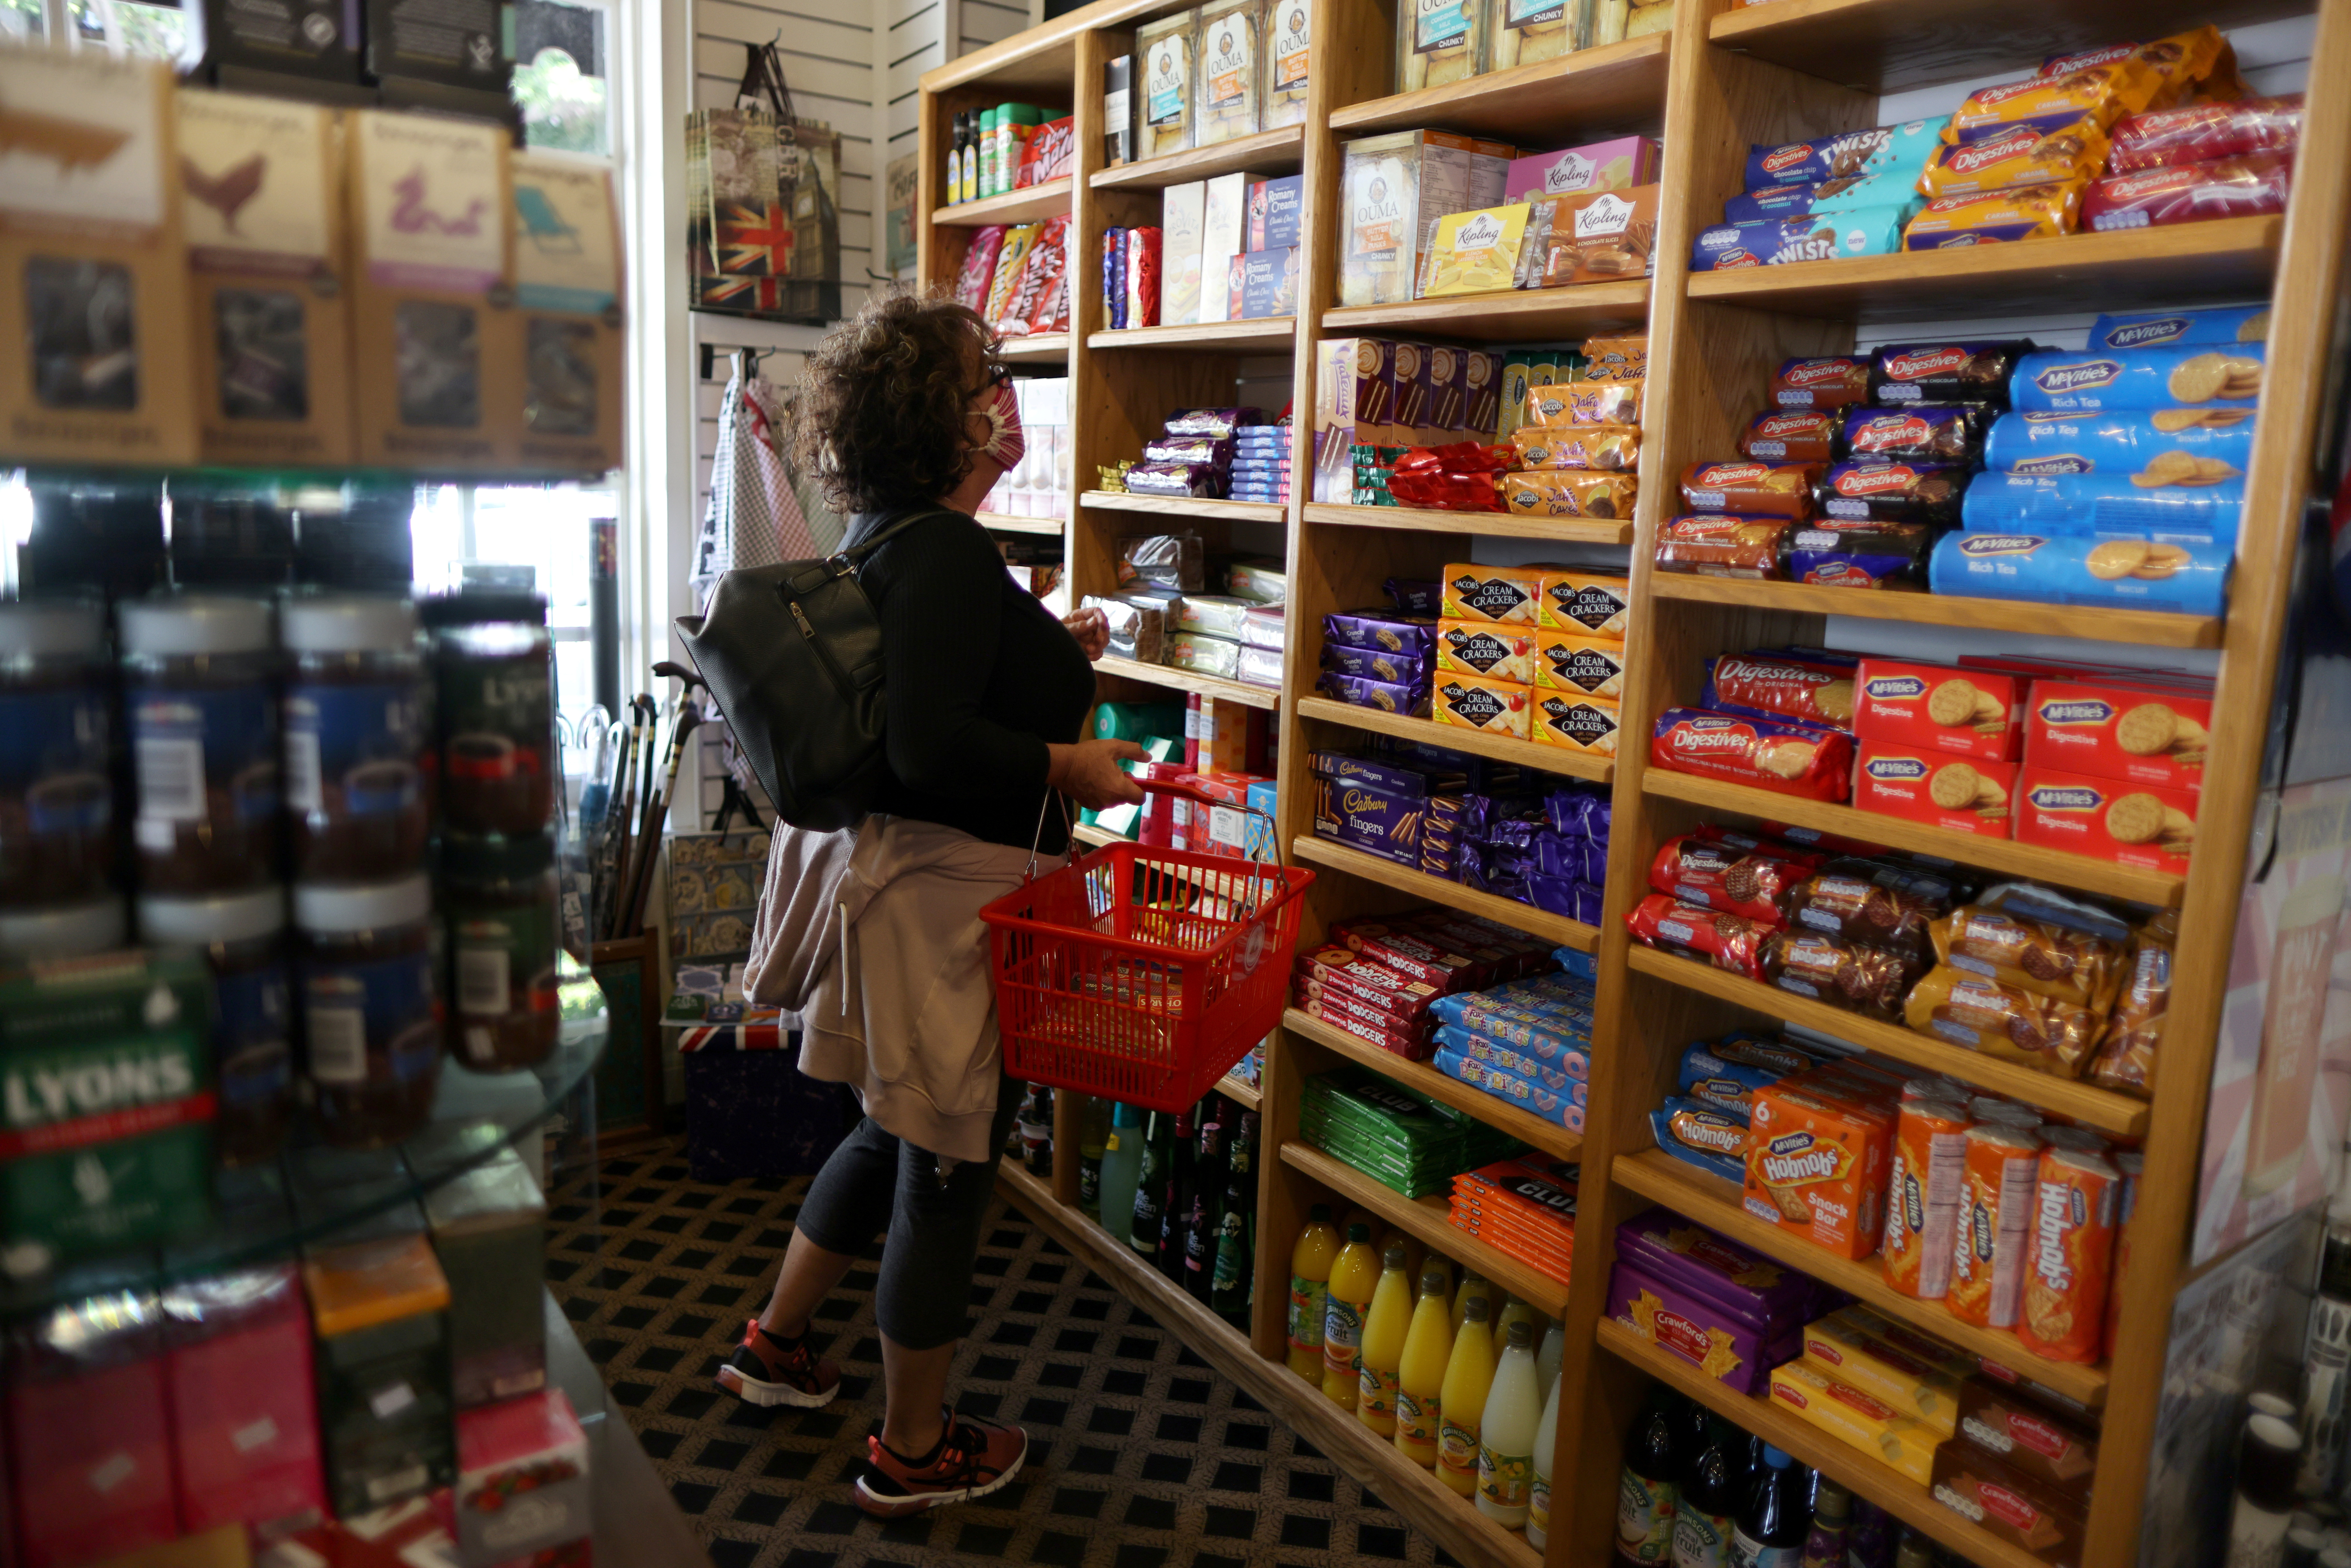 Paula Jarvis, 61, buys biscuits at the King's Head pub as Los Angeles County moves into the least restrictive yellow coronavirus disease (COVID-19) disease reopening tier, in Santa Monica, California, U.S., May 6, 2021. REUTERS/Lucy Nicholson/Files